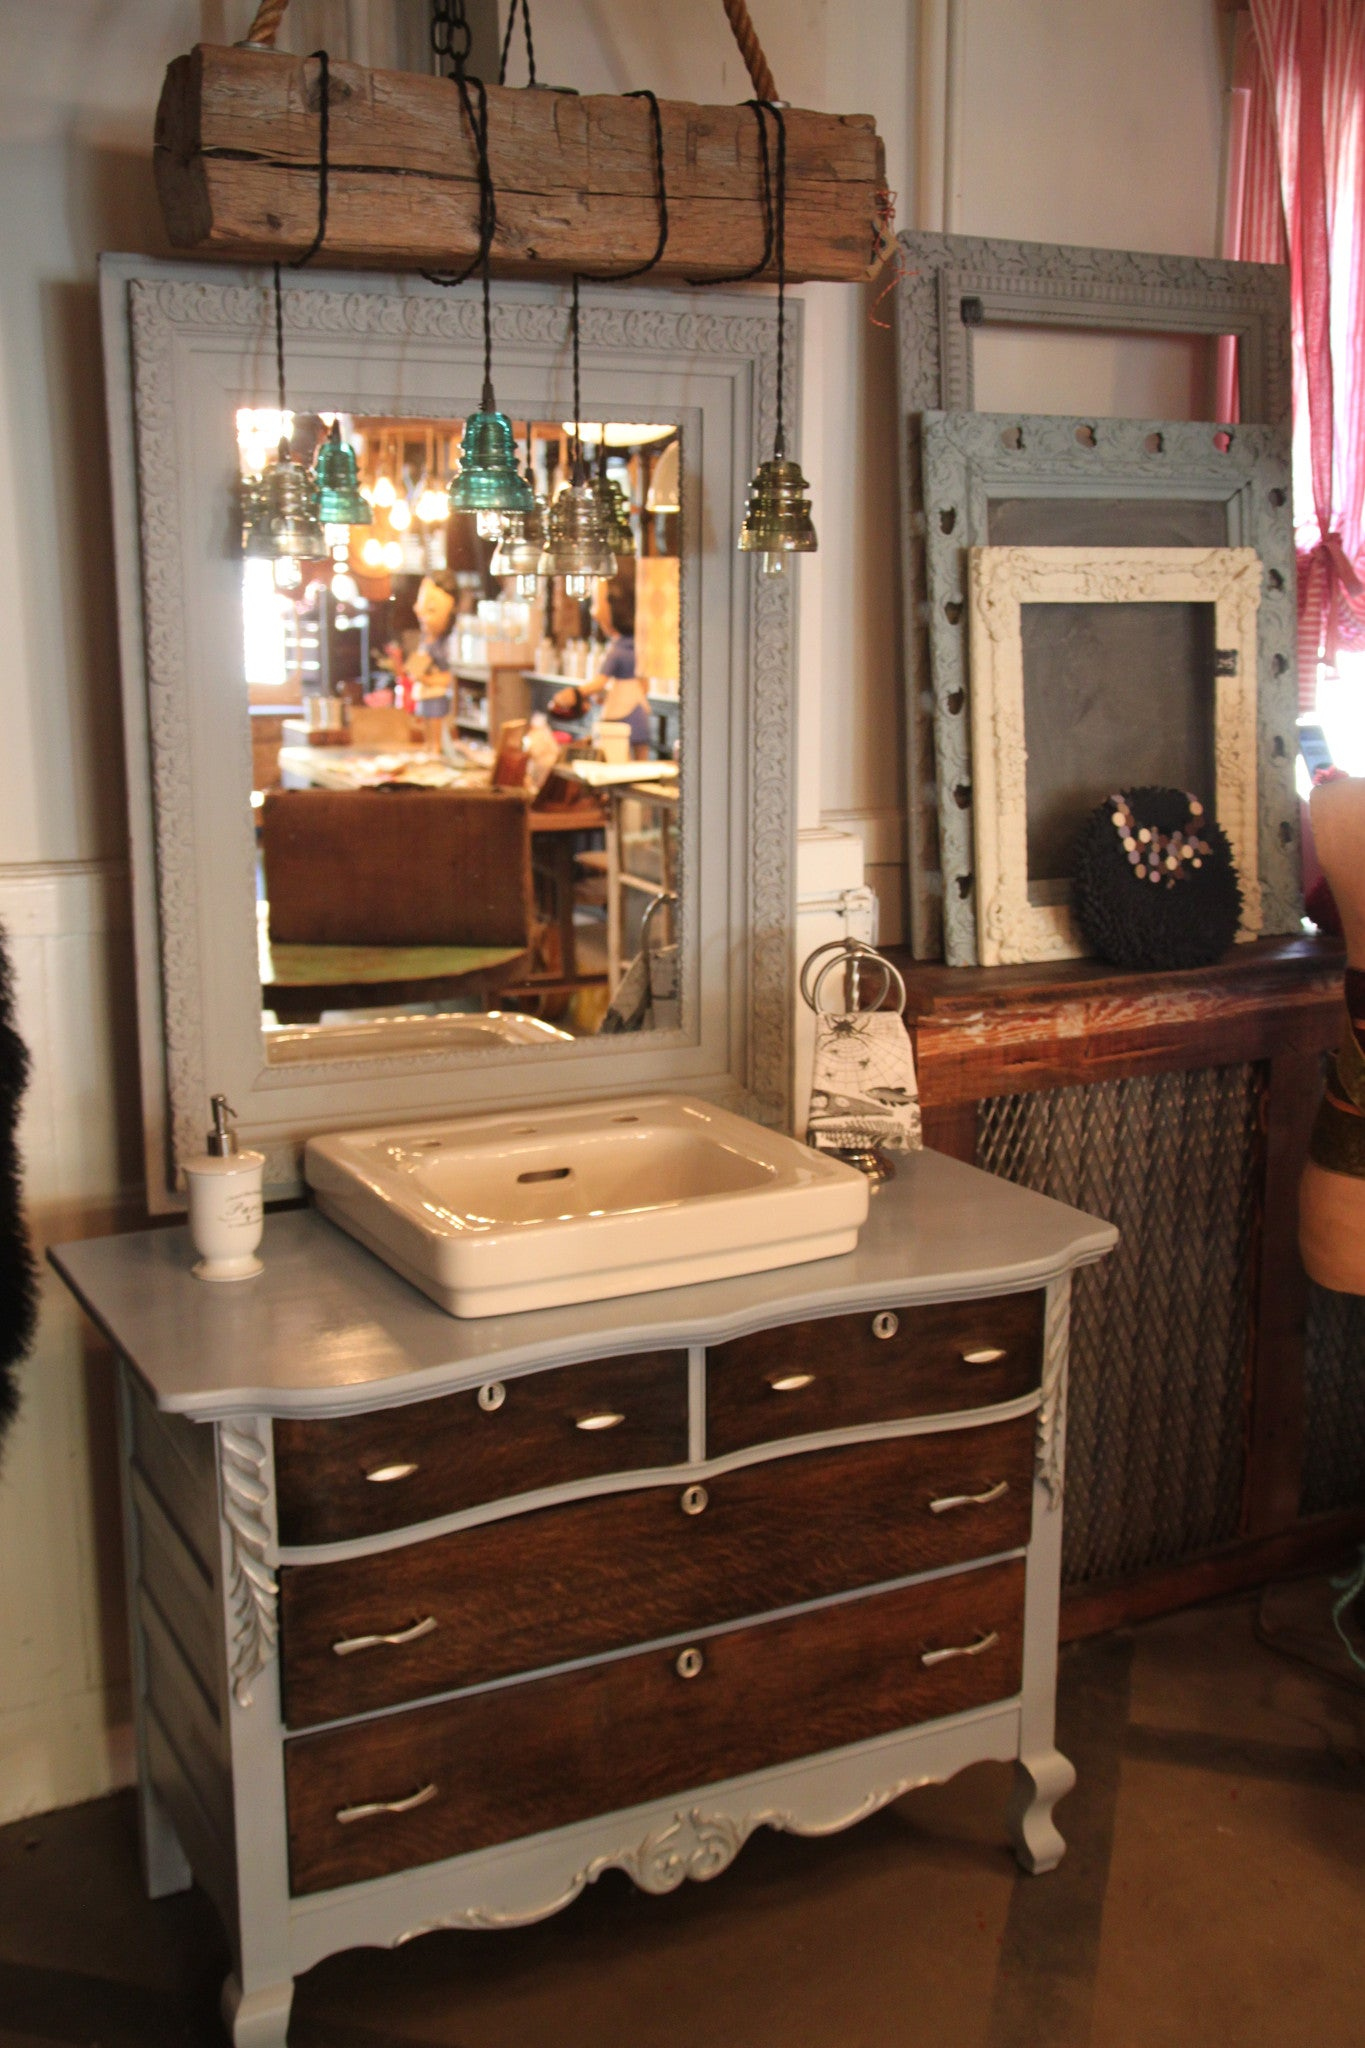 Reclaimed Bathroom Vanity with 1950s cast iron Kohler sink, finished in  Annie Sloan Chalk Paint - Reclaimed Vintage Brits Bathroom Vanity Using Annie Sloan Chalk